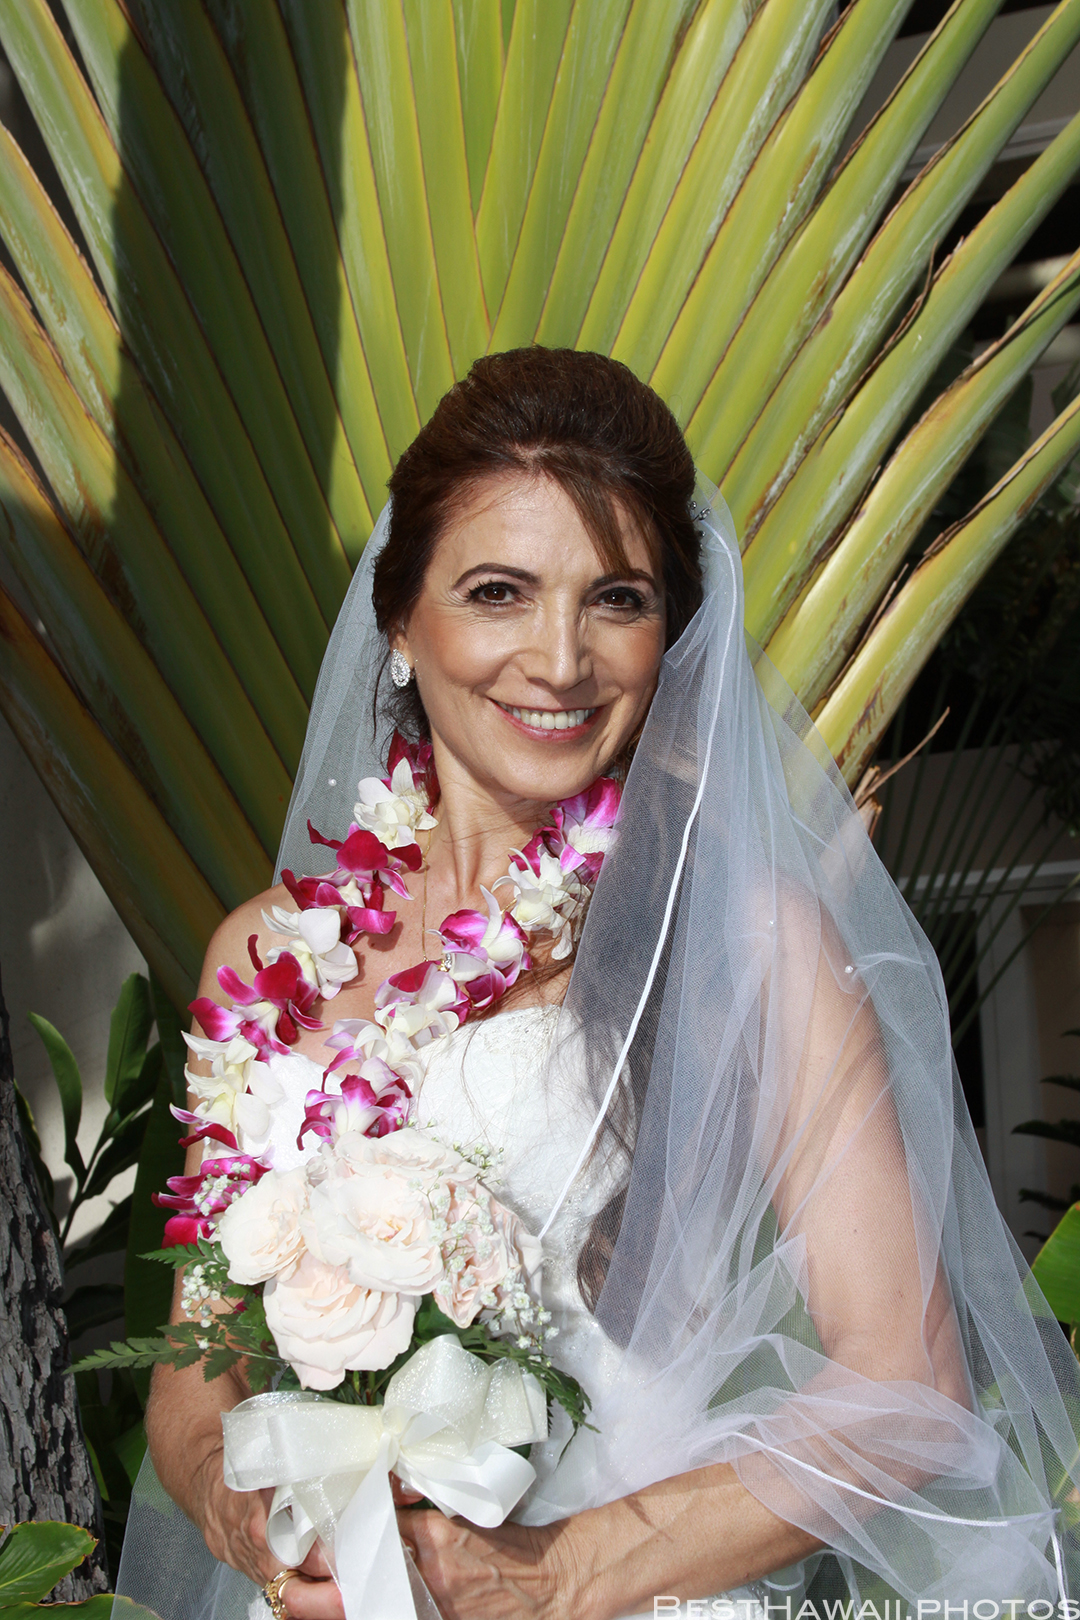 Wedding Photos at Hilton Hawaiian Village by Pasha www.BestHawaii.photos 121820158641